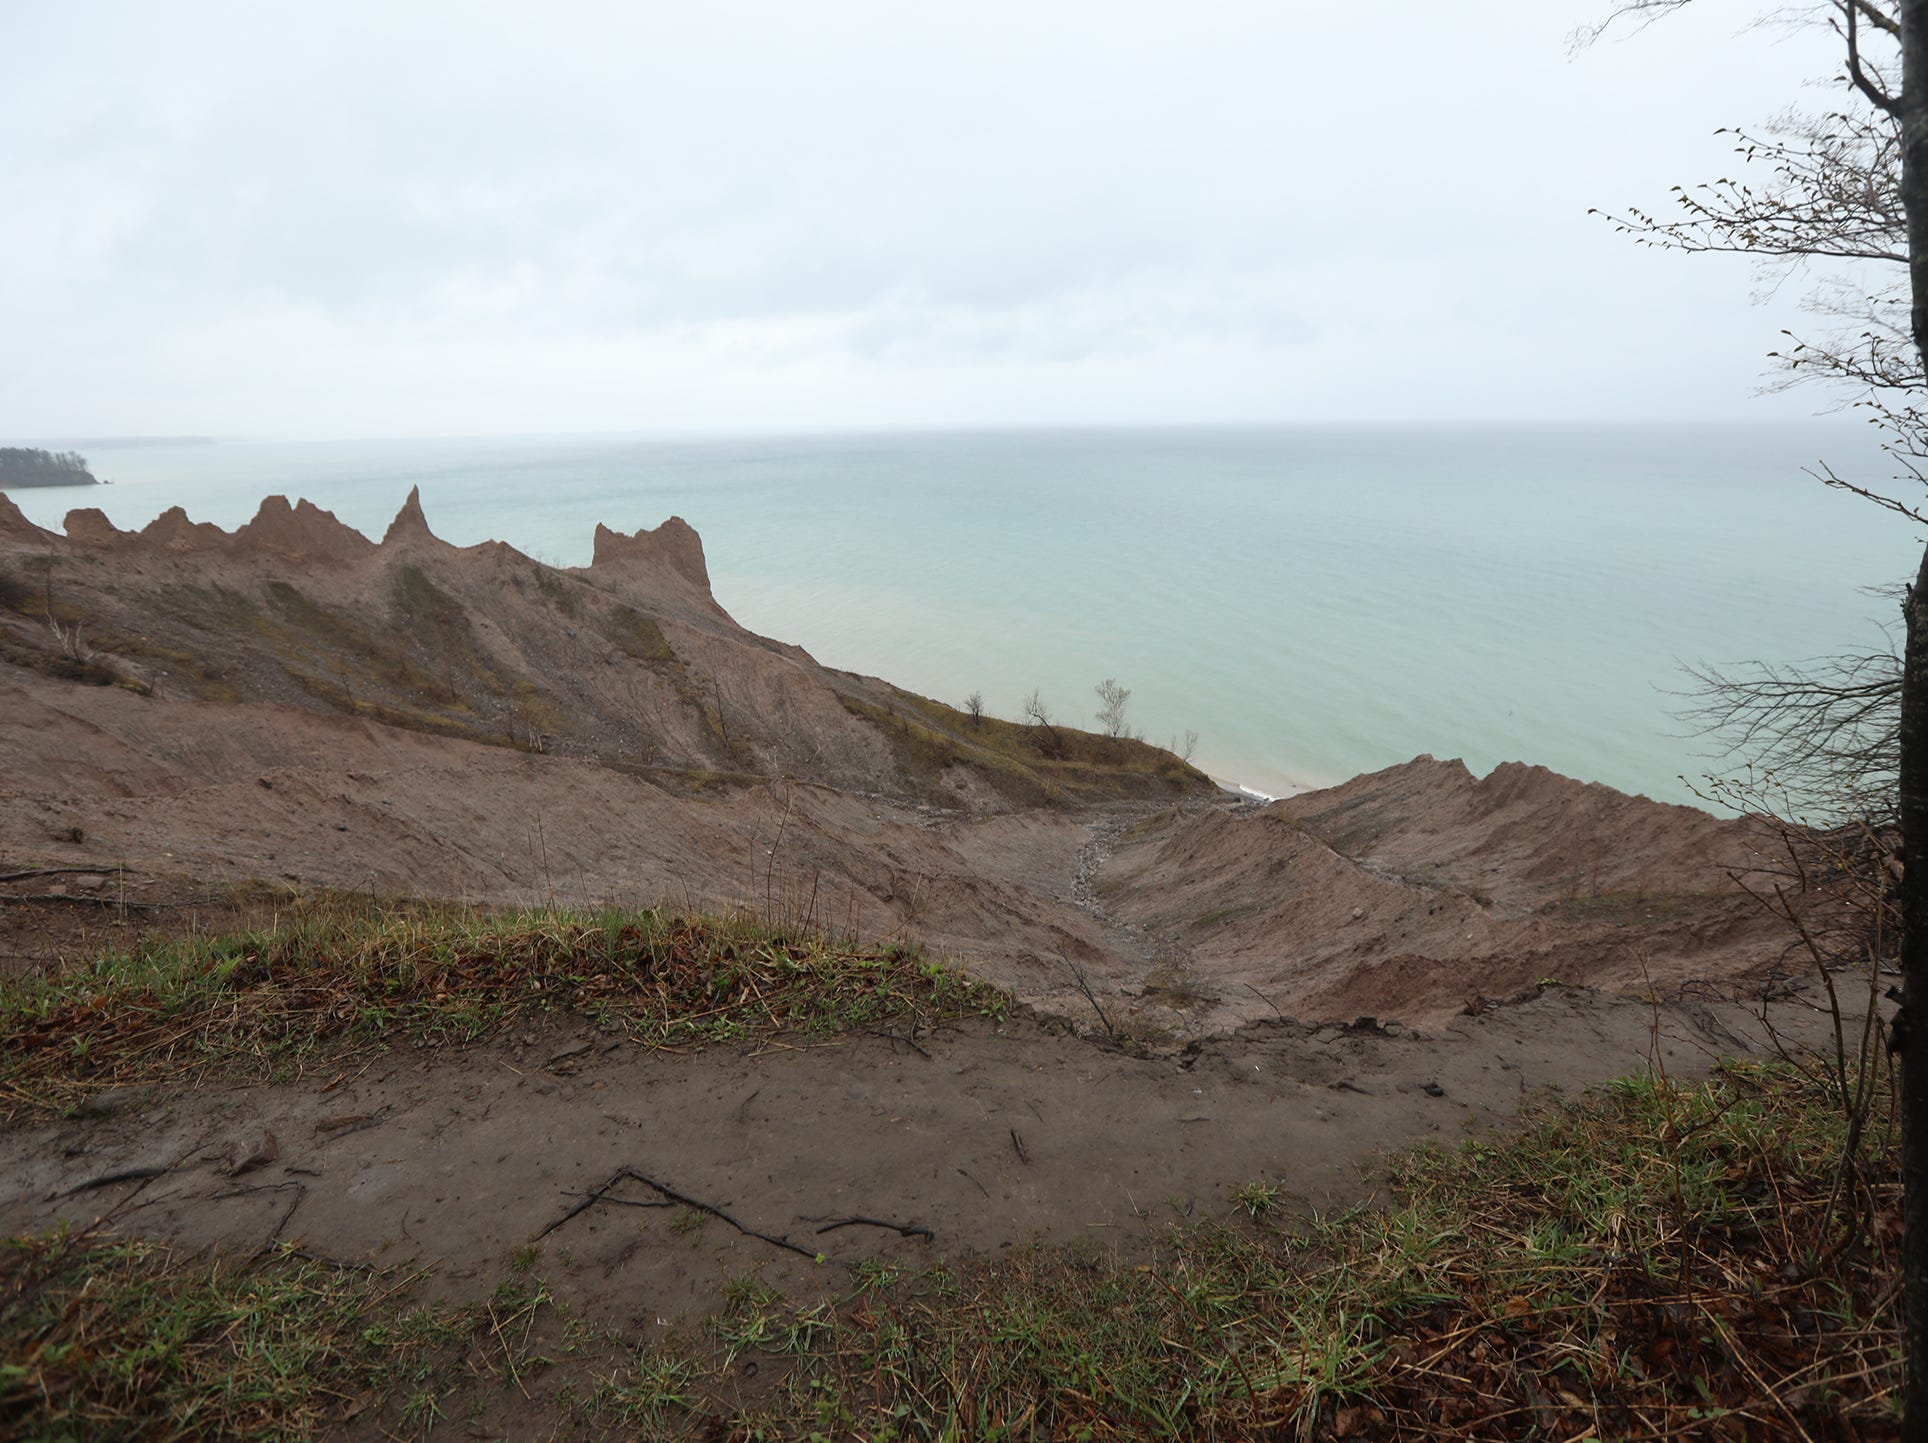 Using the bluff trail is dangerous and life threatening with several part of it completely gone from erosion.